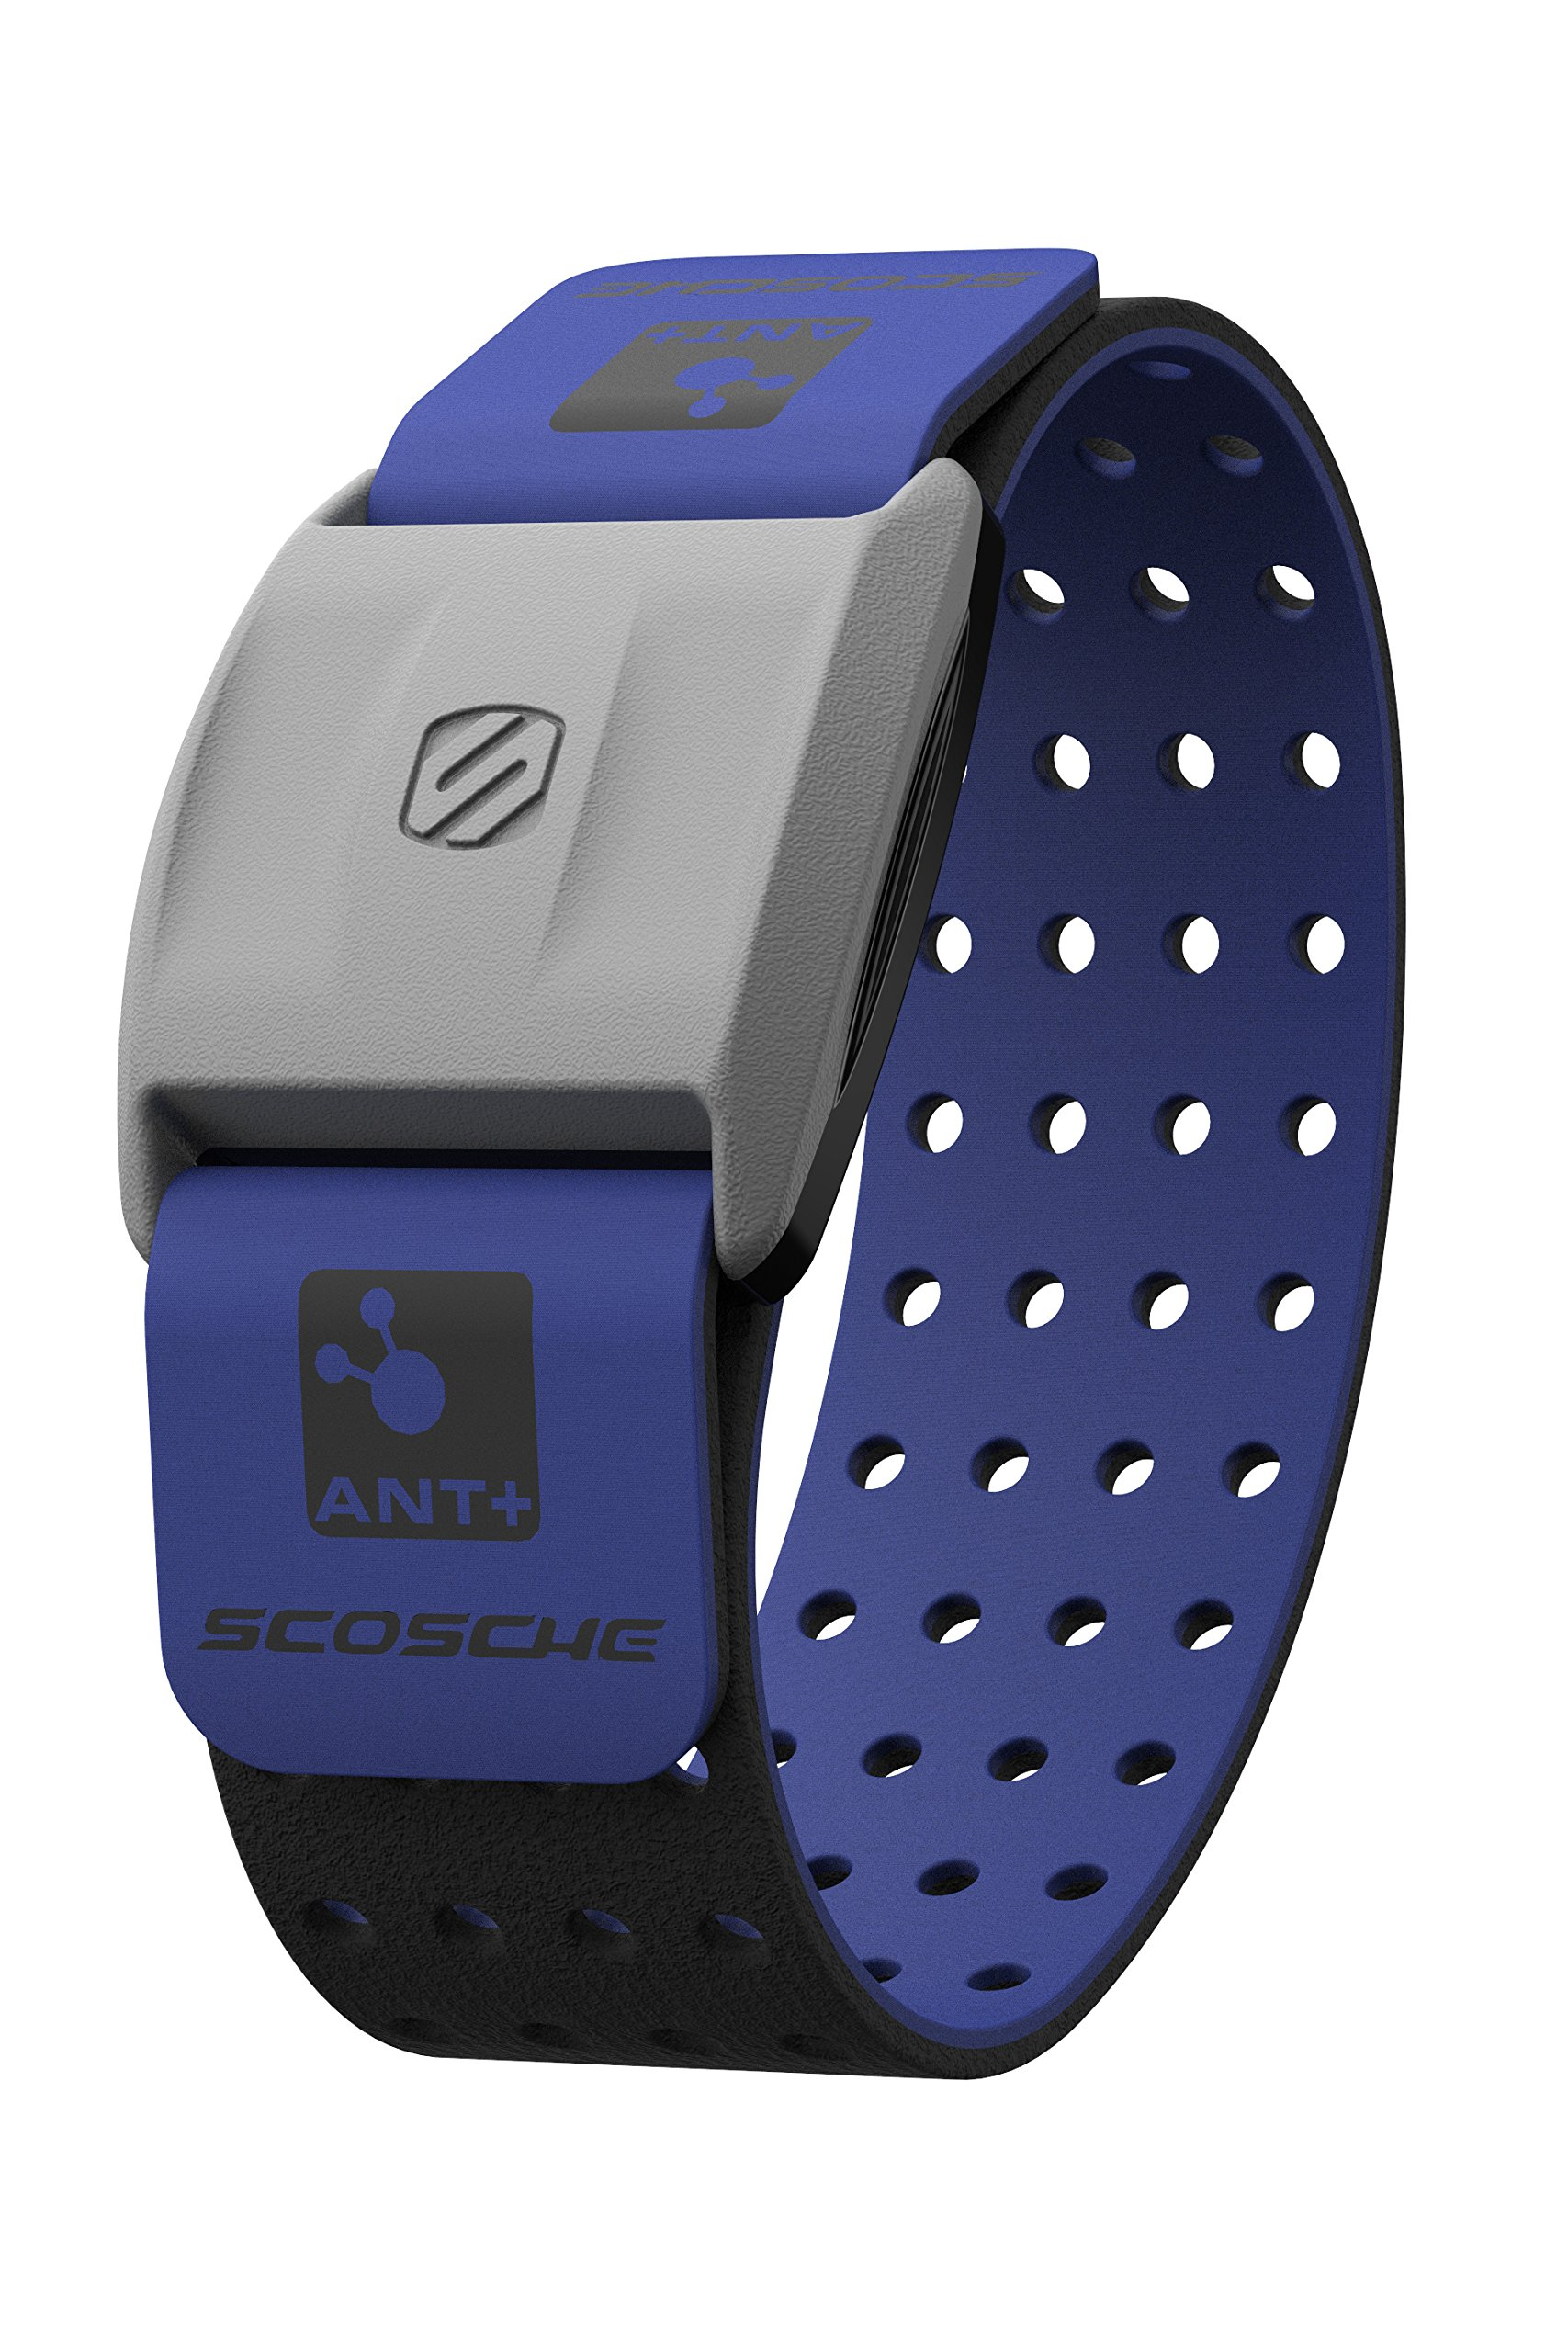 Scosche Rhythm+ Heart Rate Monitor Armband - Blue - Optical Heart Rate Armband Monitor with Dual Band Radio ANT+ and Bluetooth Smart